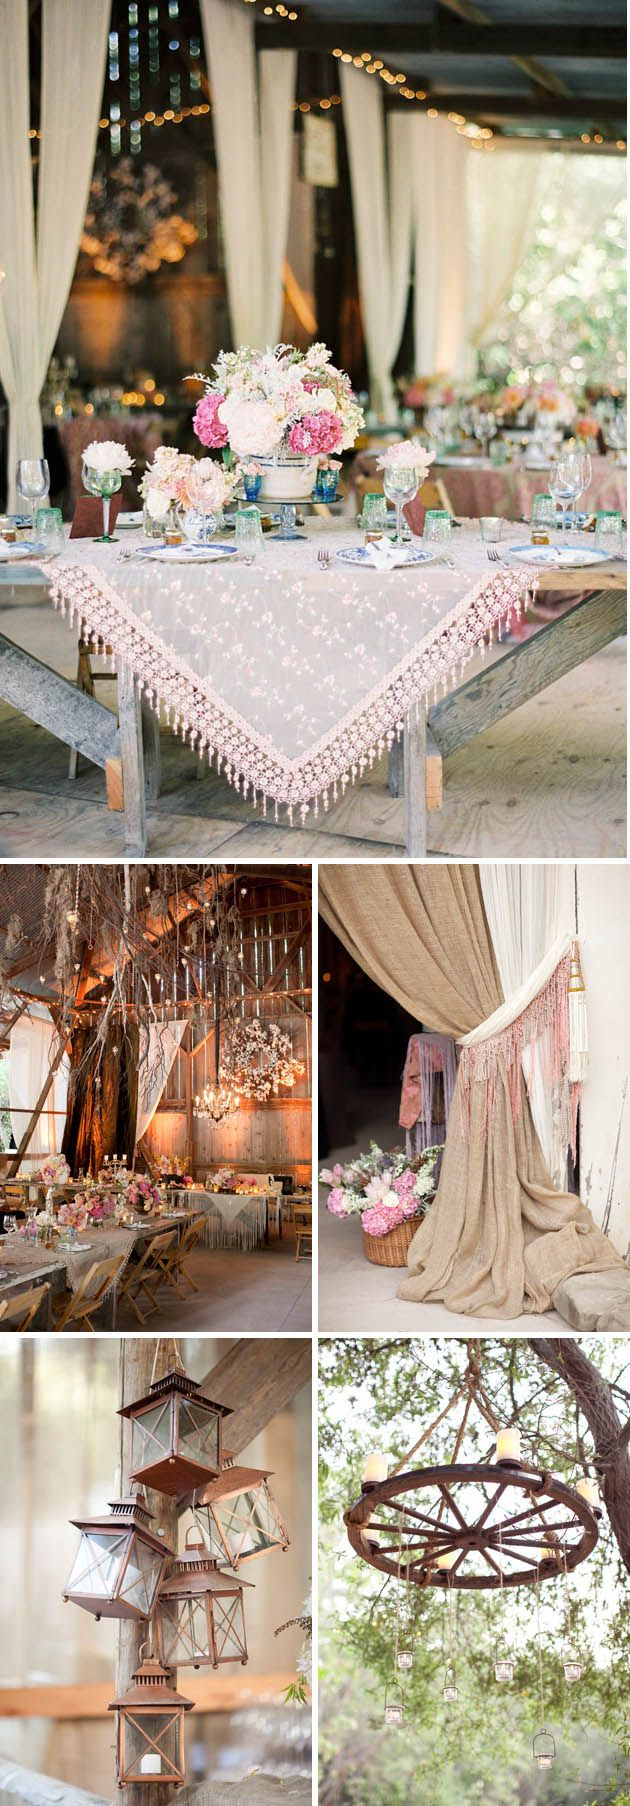 Amazing Wedding/Celebration Ideas - Photographer: Caroline Tran - Flowers & Decor: Tricia Fountaine Design - Reception Venue: Rancho Dos Pueblos